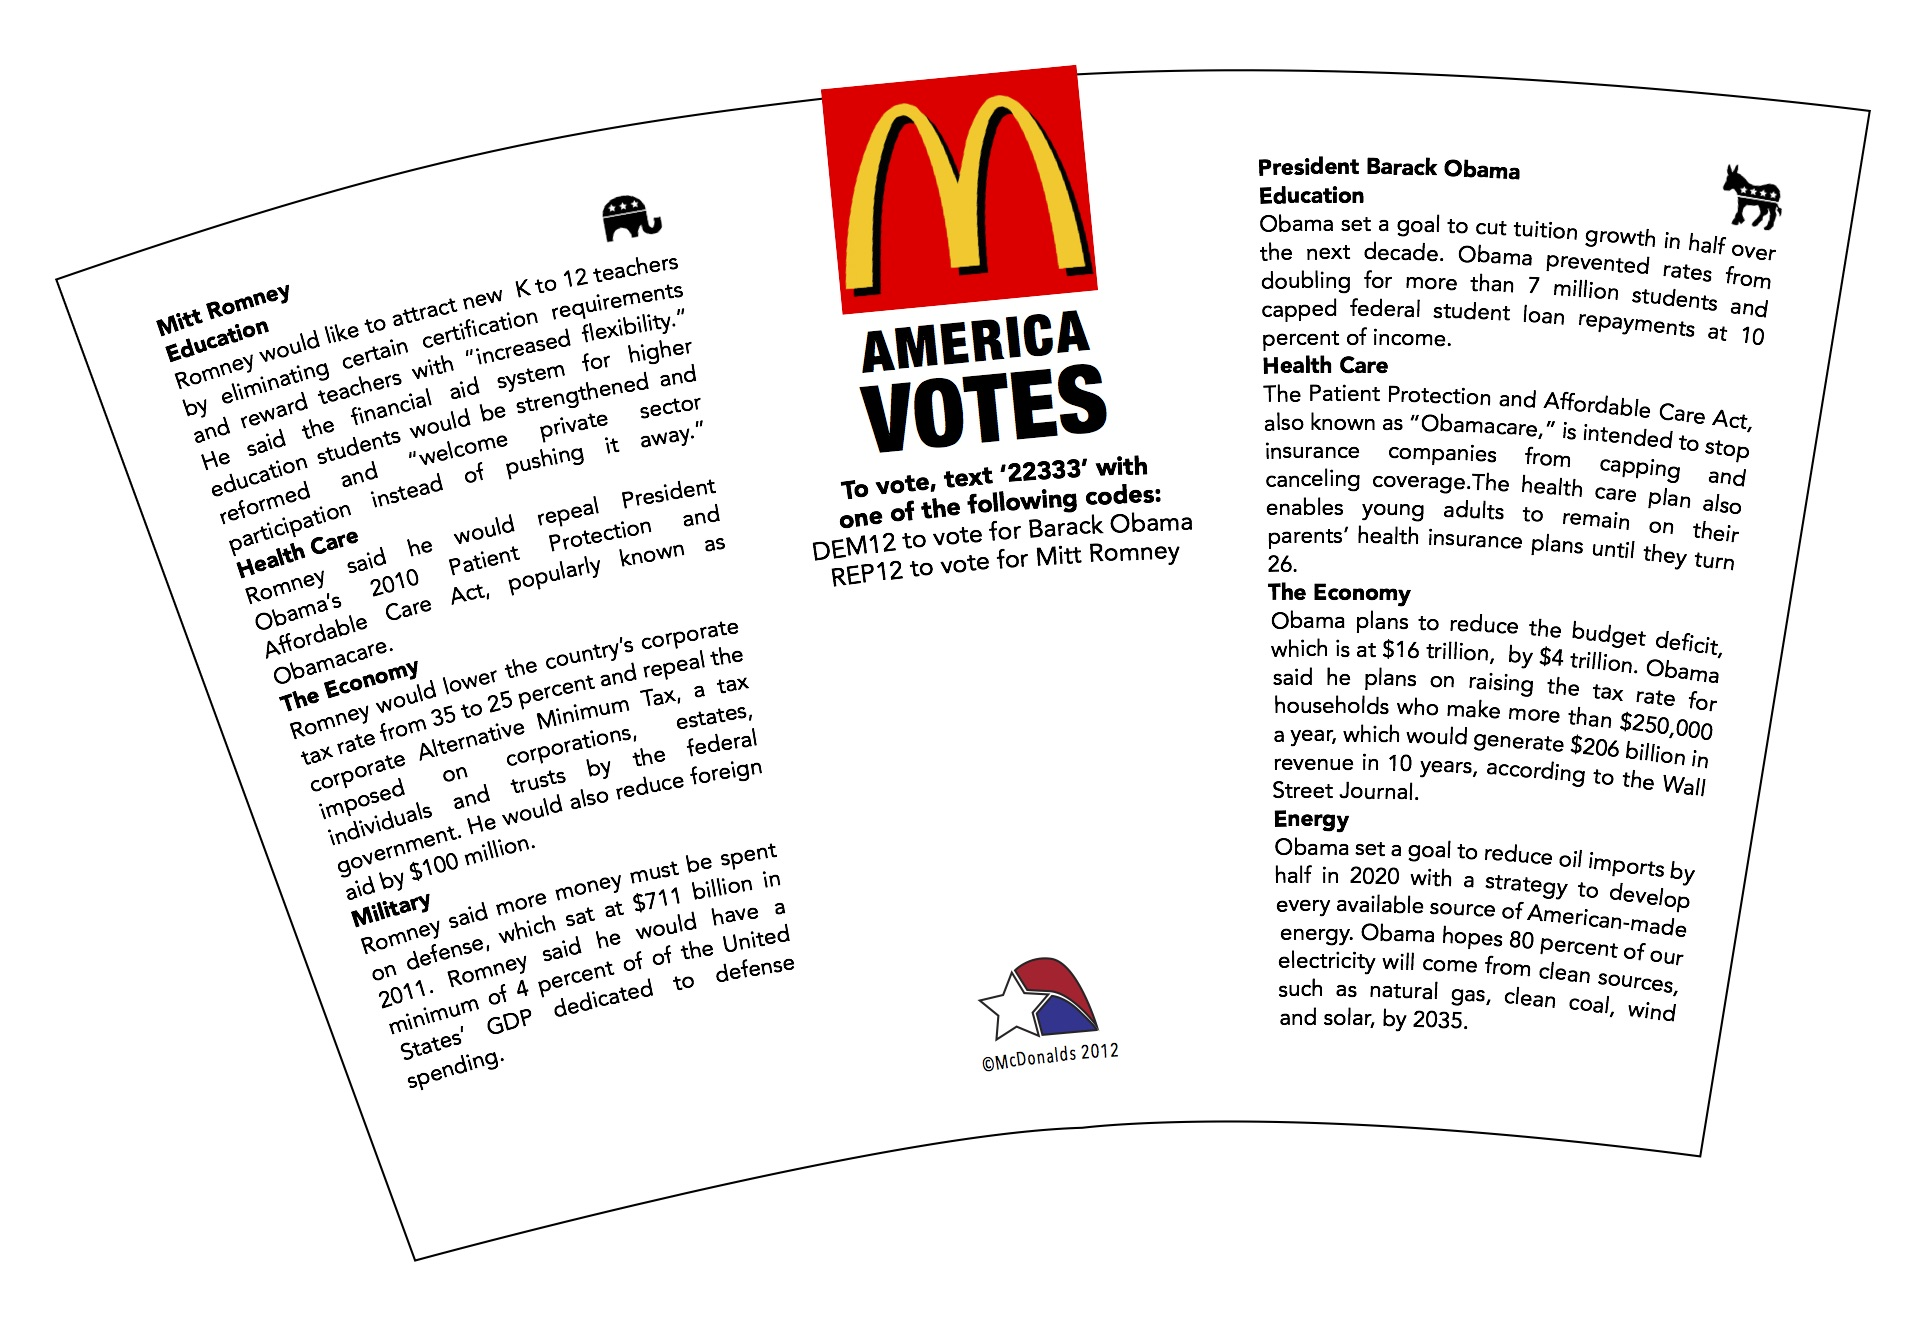 The information that would be contained on the fast food cup, giving them enough information to vote.